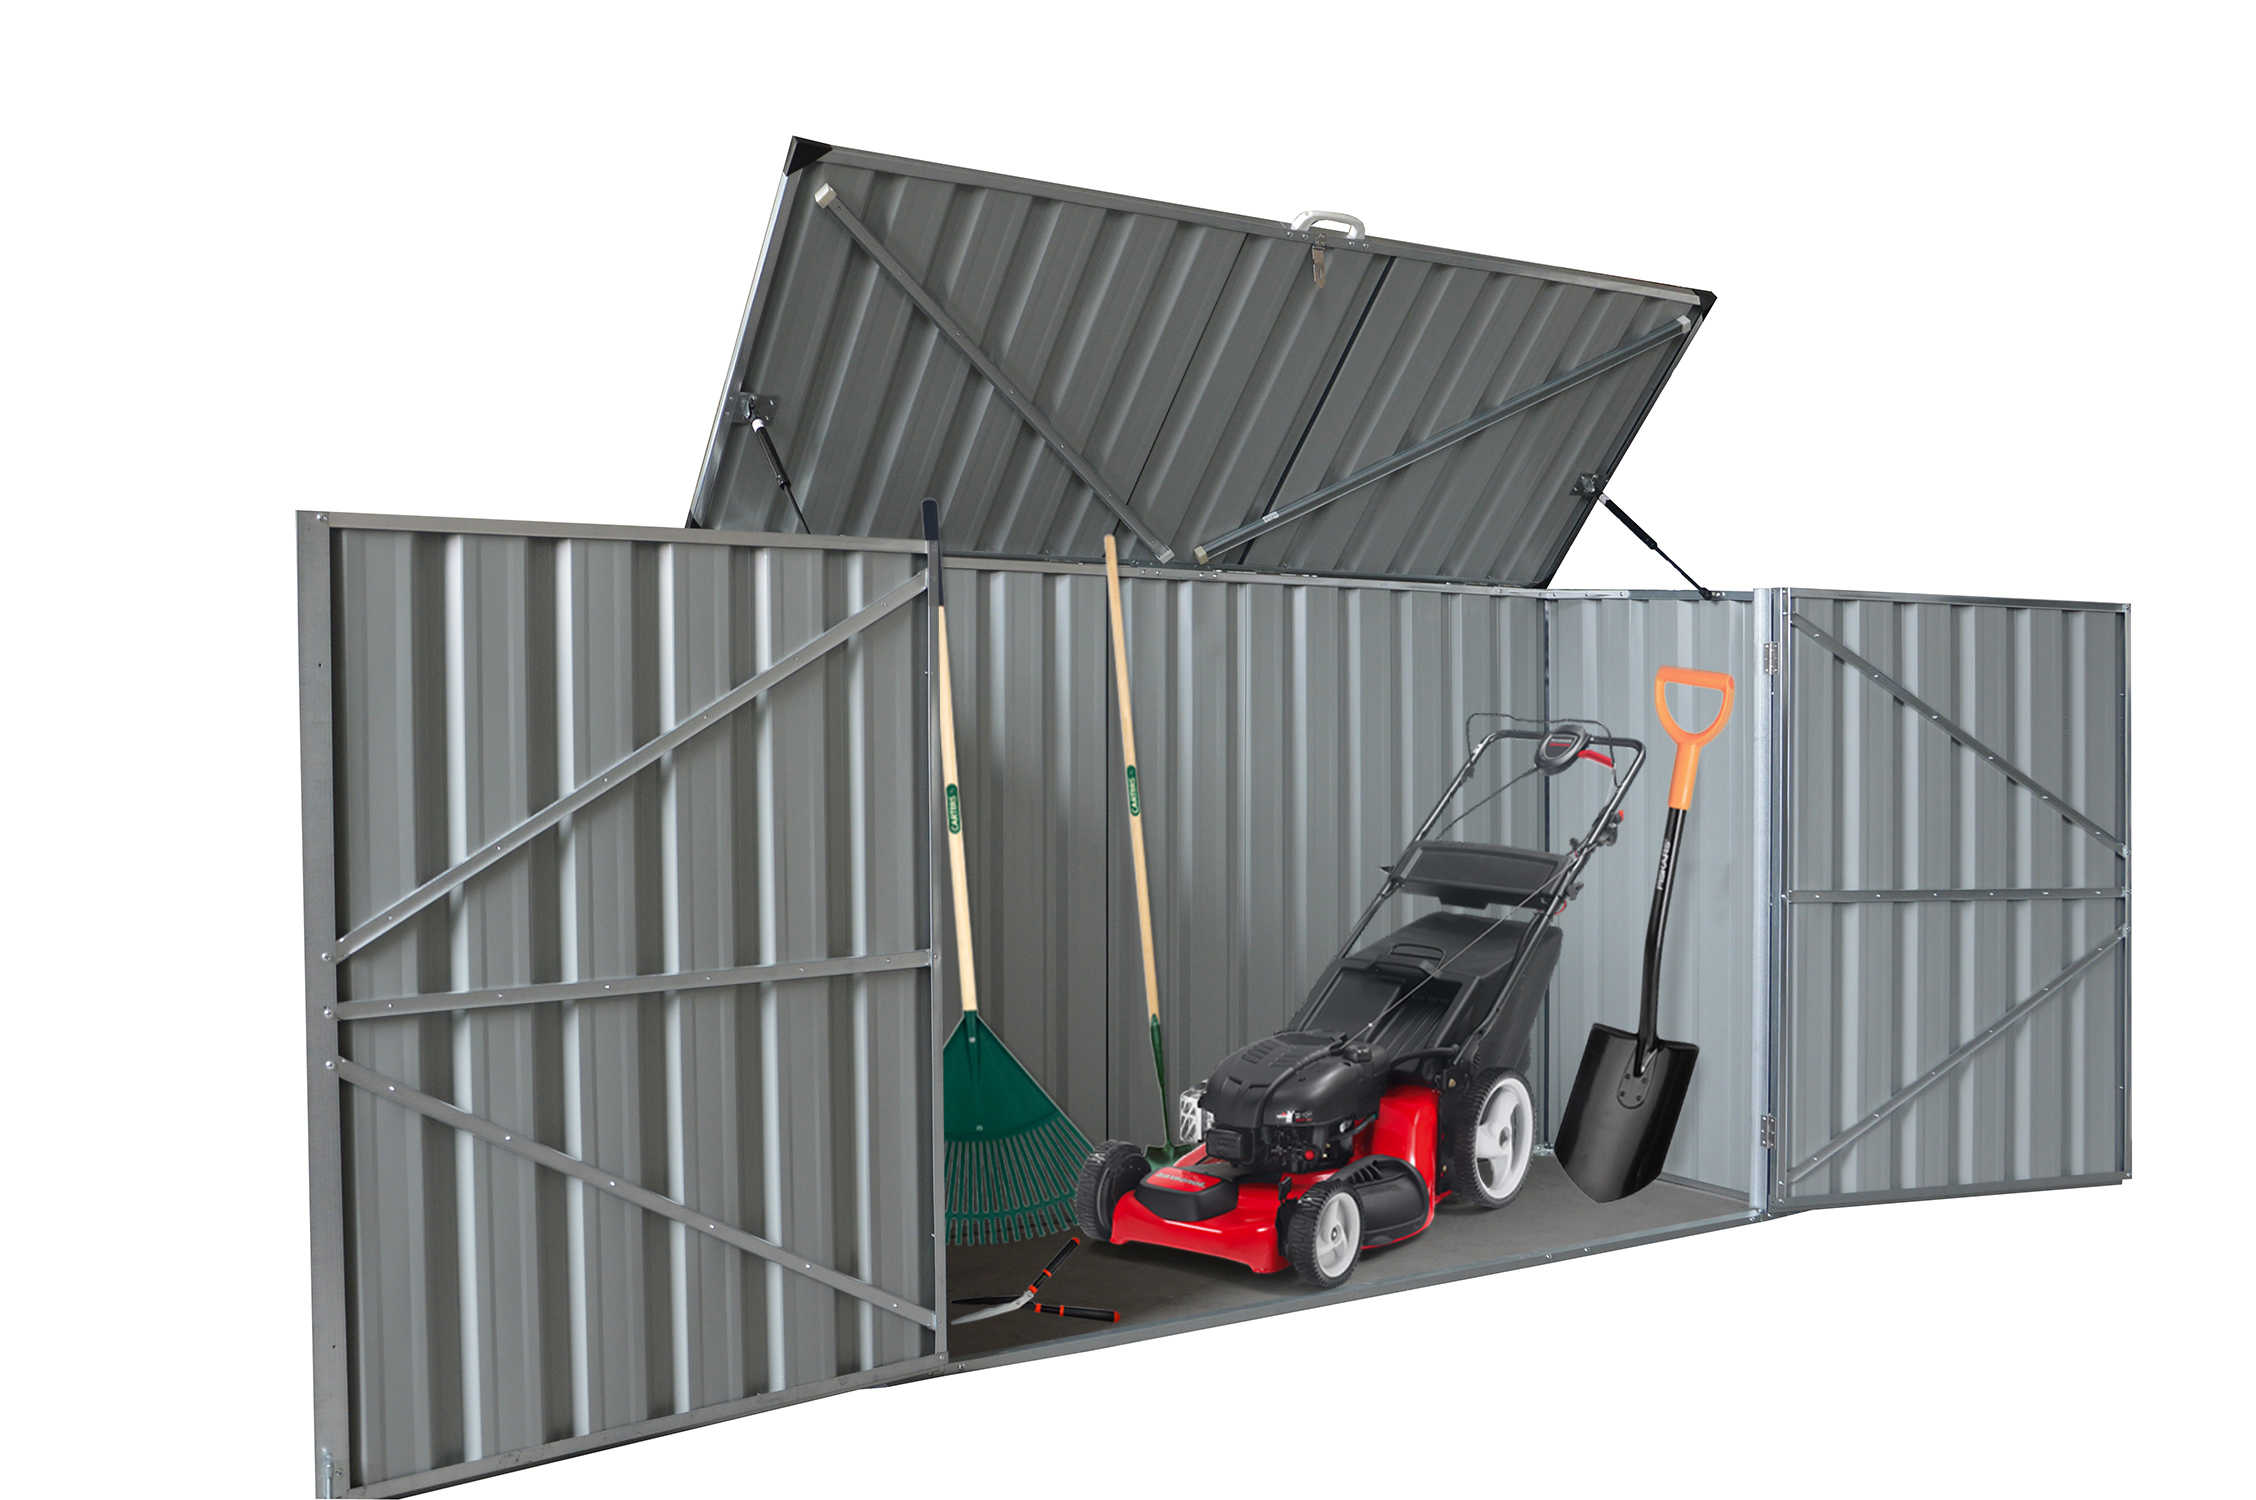 This Is A Low Profile Shed And Only 4 3 High Will Stay Below Most Fence Heights Hiding The From Neighbours Lift Up Lid With Gas Struts Stays